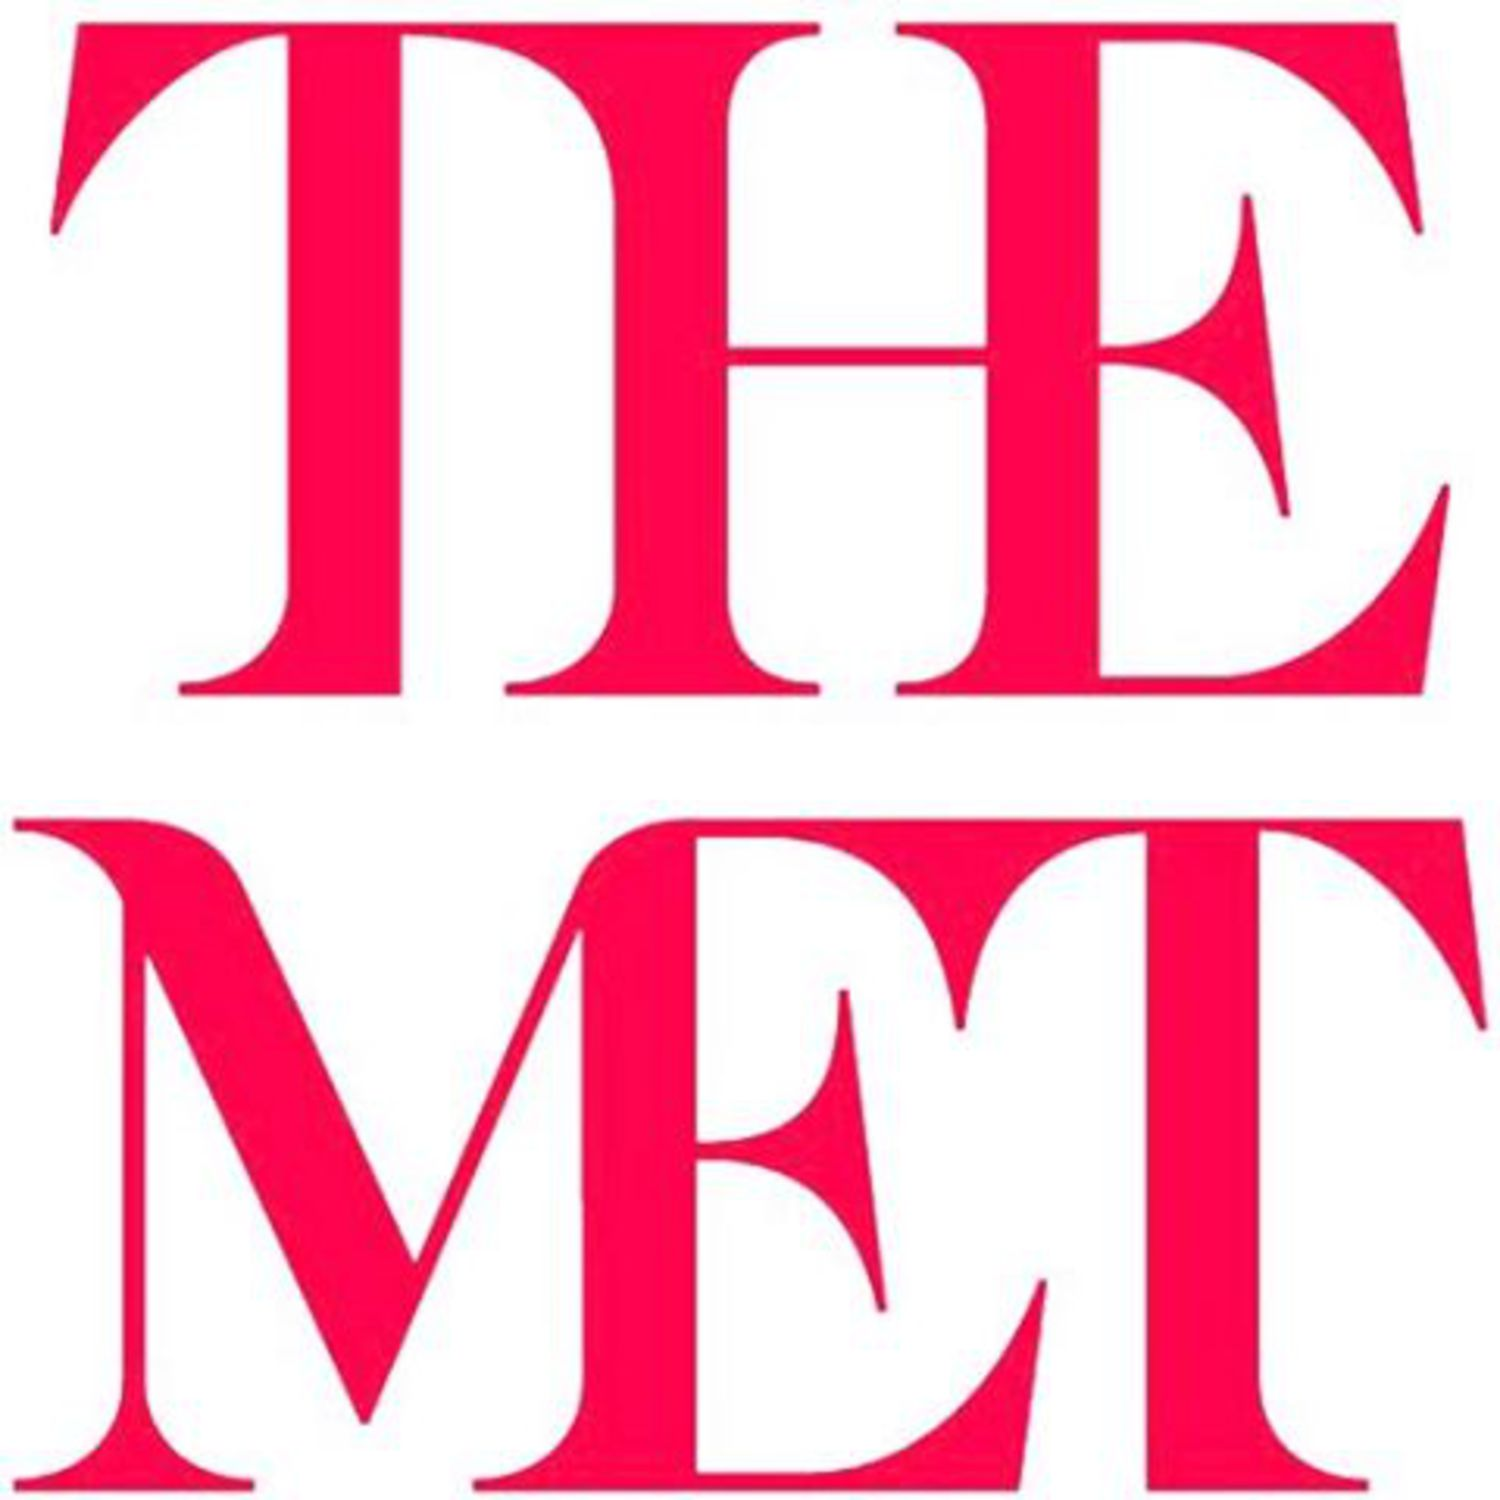 The Metropolitan Museum of Art's new logo was unveiled last week and people have been quick to share a wide array of (not always kind) opinions. However, we see The Met's strategic move for what it really is: a piece to the much larger puzzle of an overall re-brand; and a step to creating fluidity for the iconic museum across all touch points. So from all of us here at BLKBOX, bravo. (cc:@wolffolins) #themet #design #branding #agency